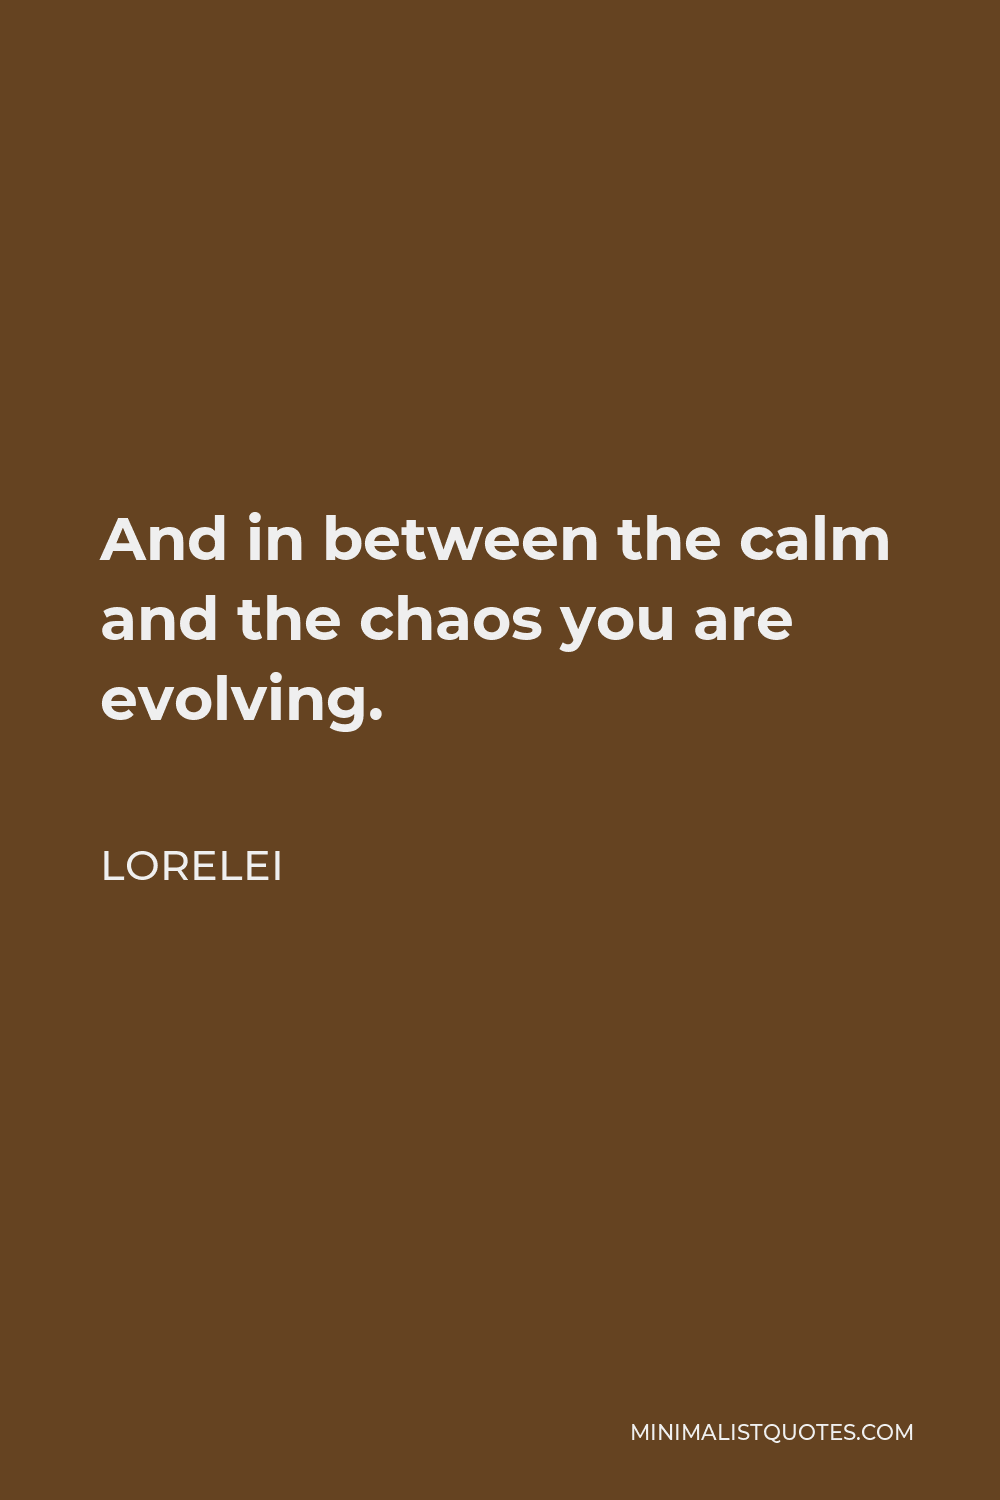 Lorelei Quote - And in between the calm and the chaos you are evolving.